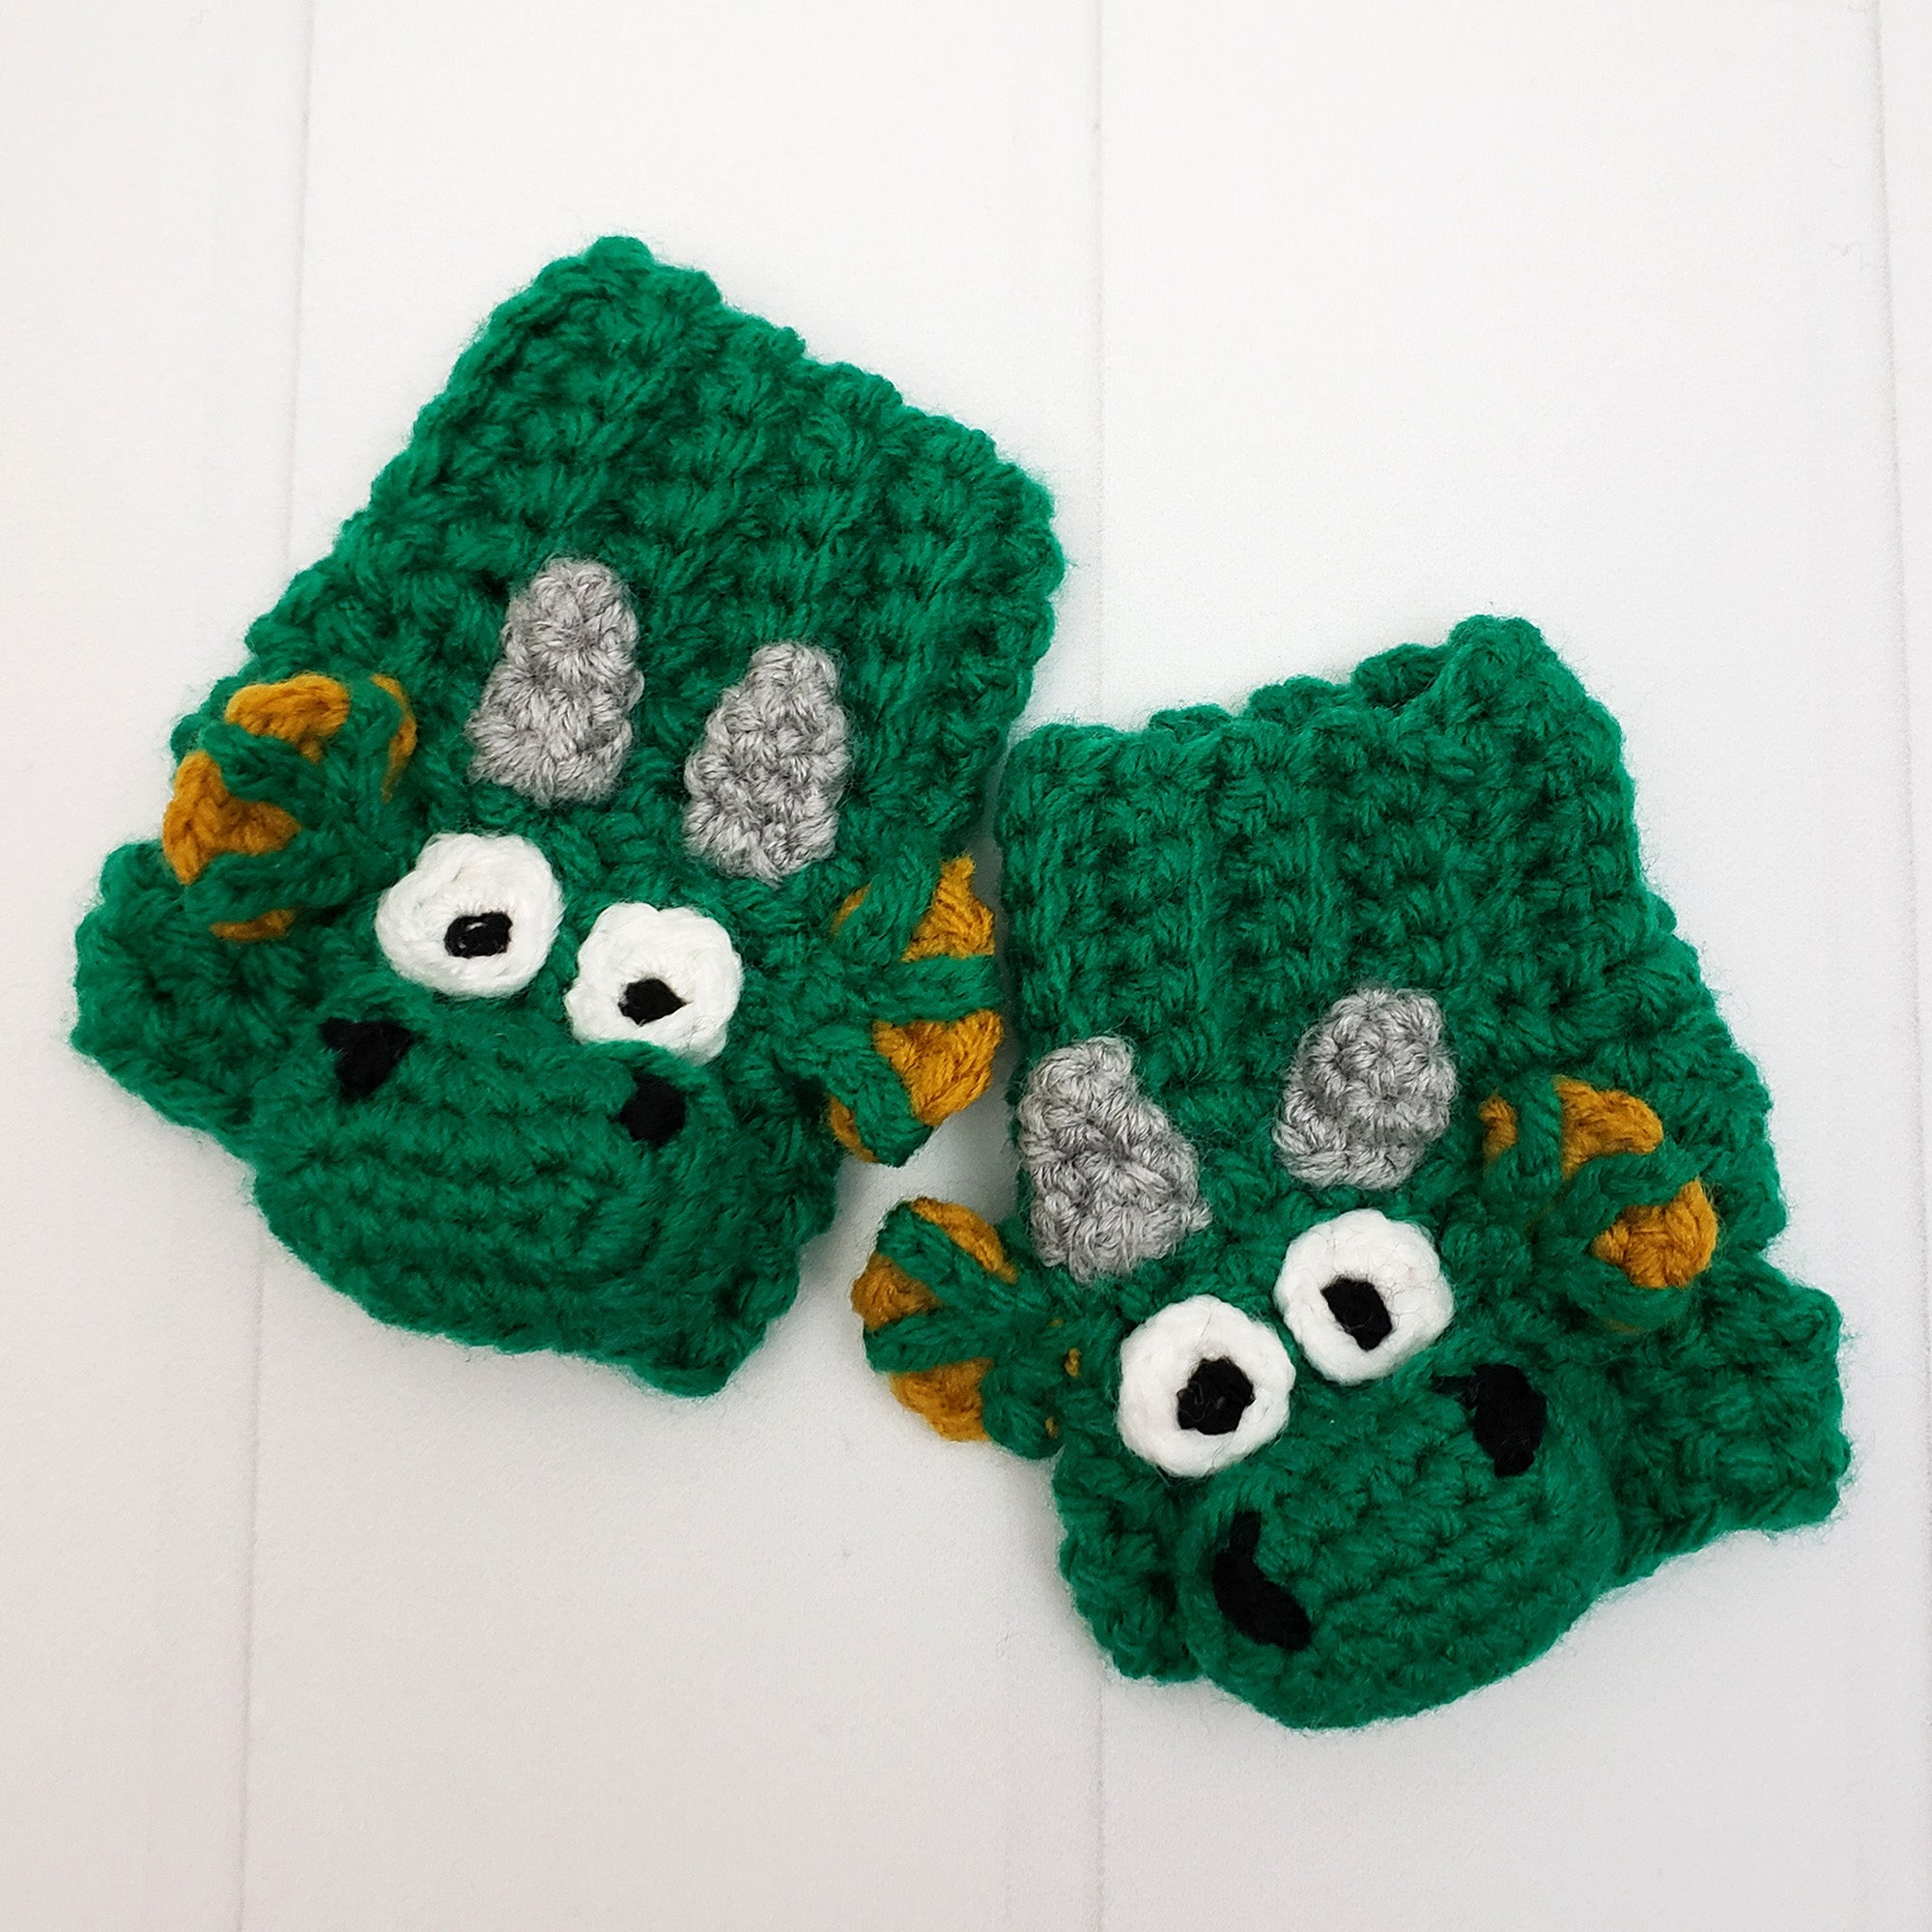 Draco the Dragon Fingerless Gloves Crochet Pattern